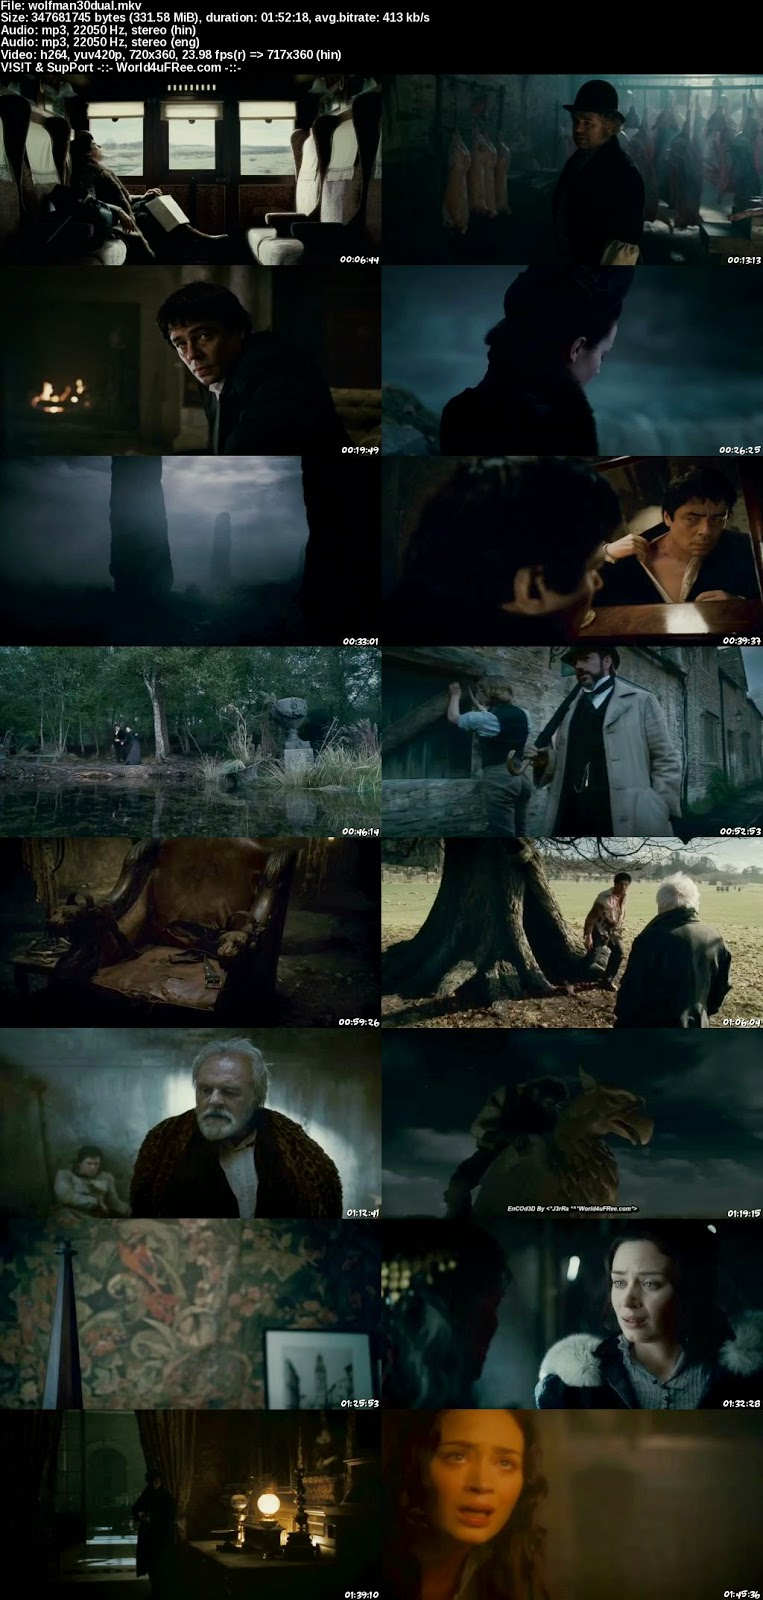 The Wolfman 2010 Dual Audio Hindi Eng UNRATED BRRip 300mb, the wolfman 2010 hindi dubbed 480p brrip 300mb free download or watch online at world4ufree.ws